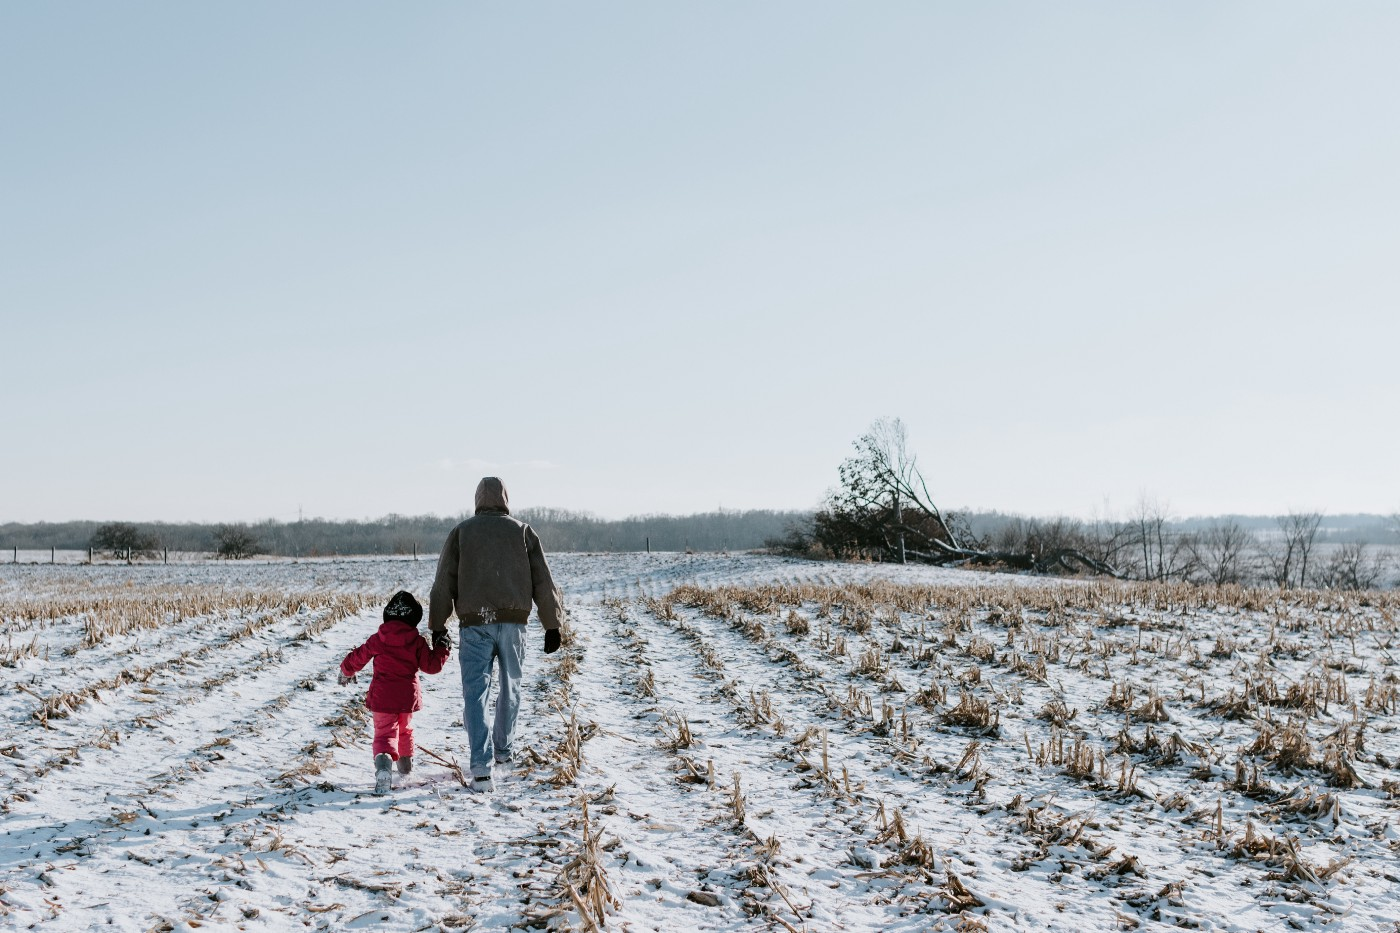 Rear view of father and daughter holding hands while walking on snow covered landscape